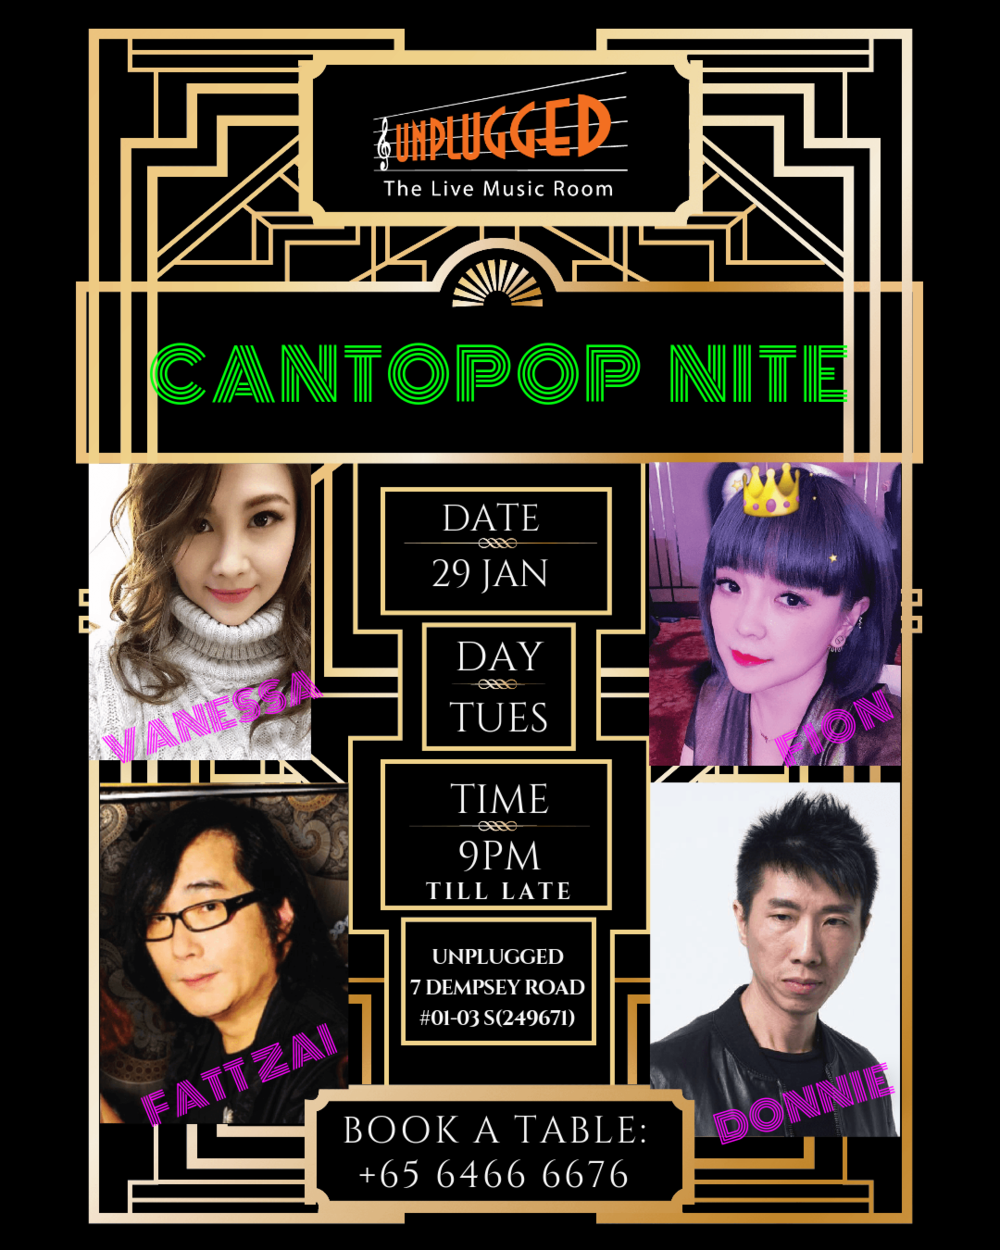 cantopop_nite_29-jan-2019